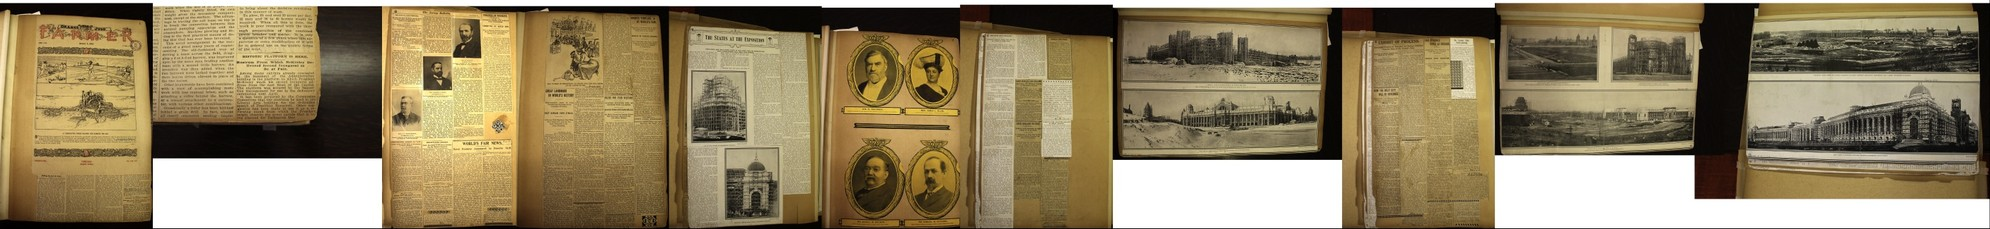 1904 World's Fair Scrapbook from Public Library in St. Louis